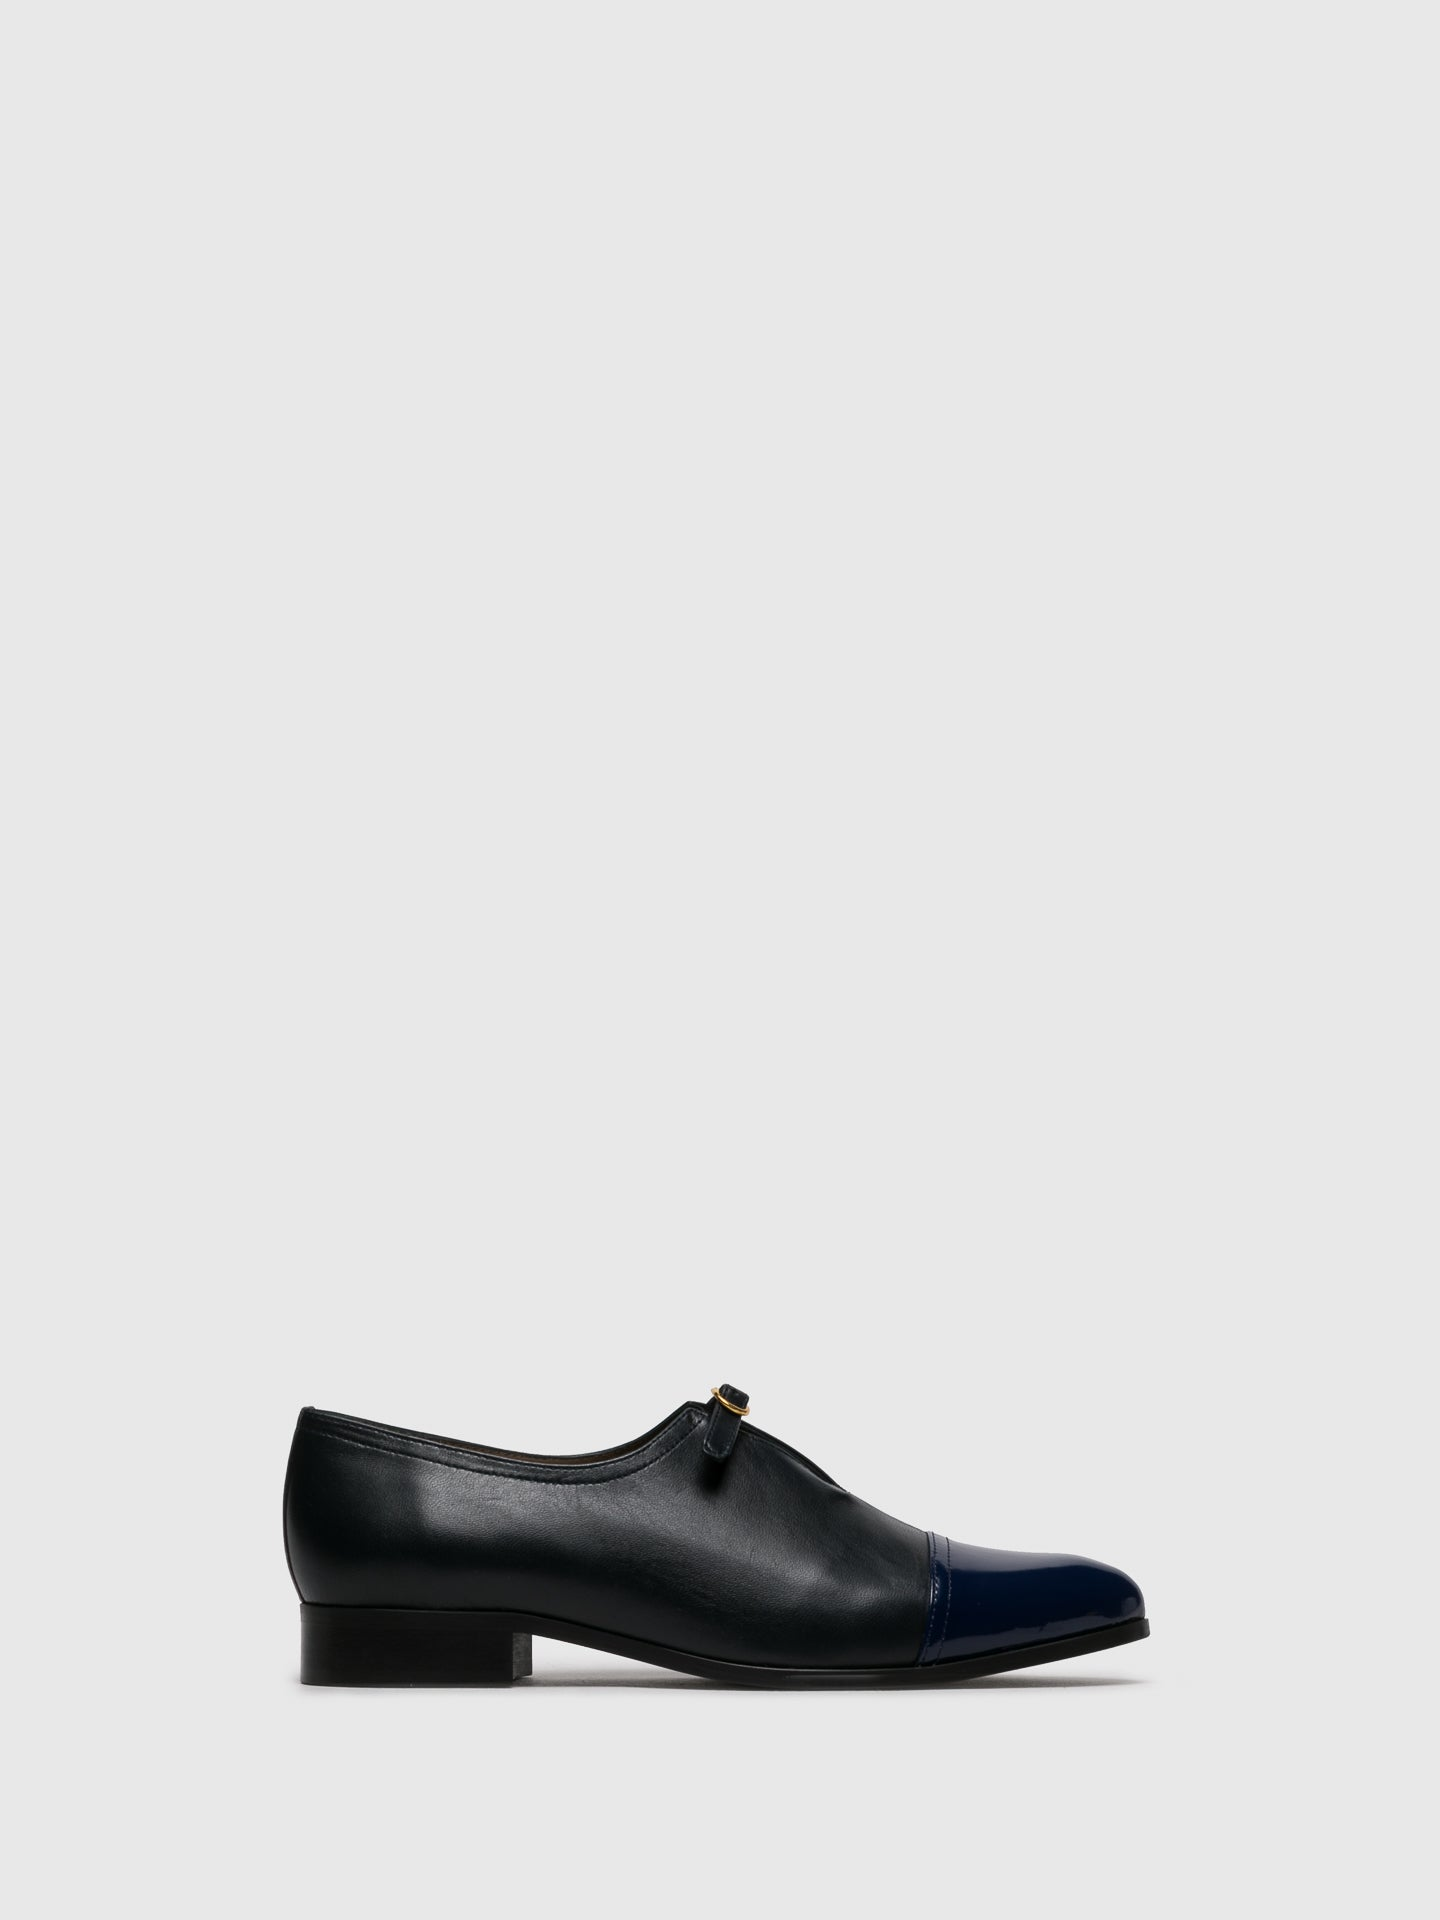 JJ Heitor Navy Suede Pointed Toe Shoes